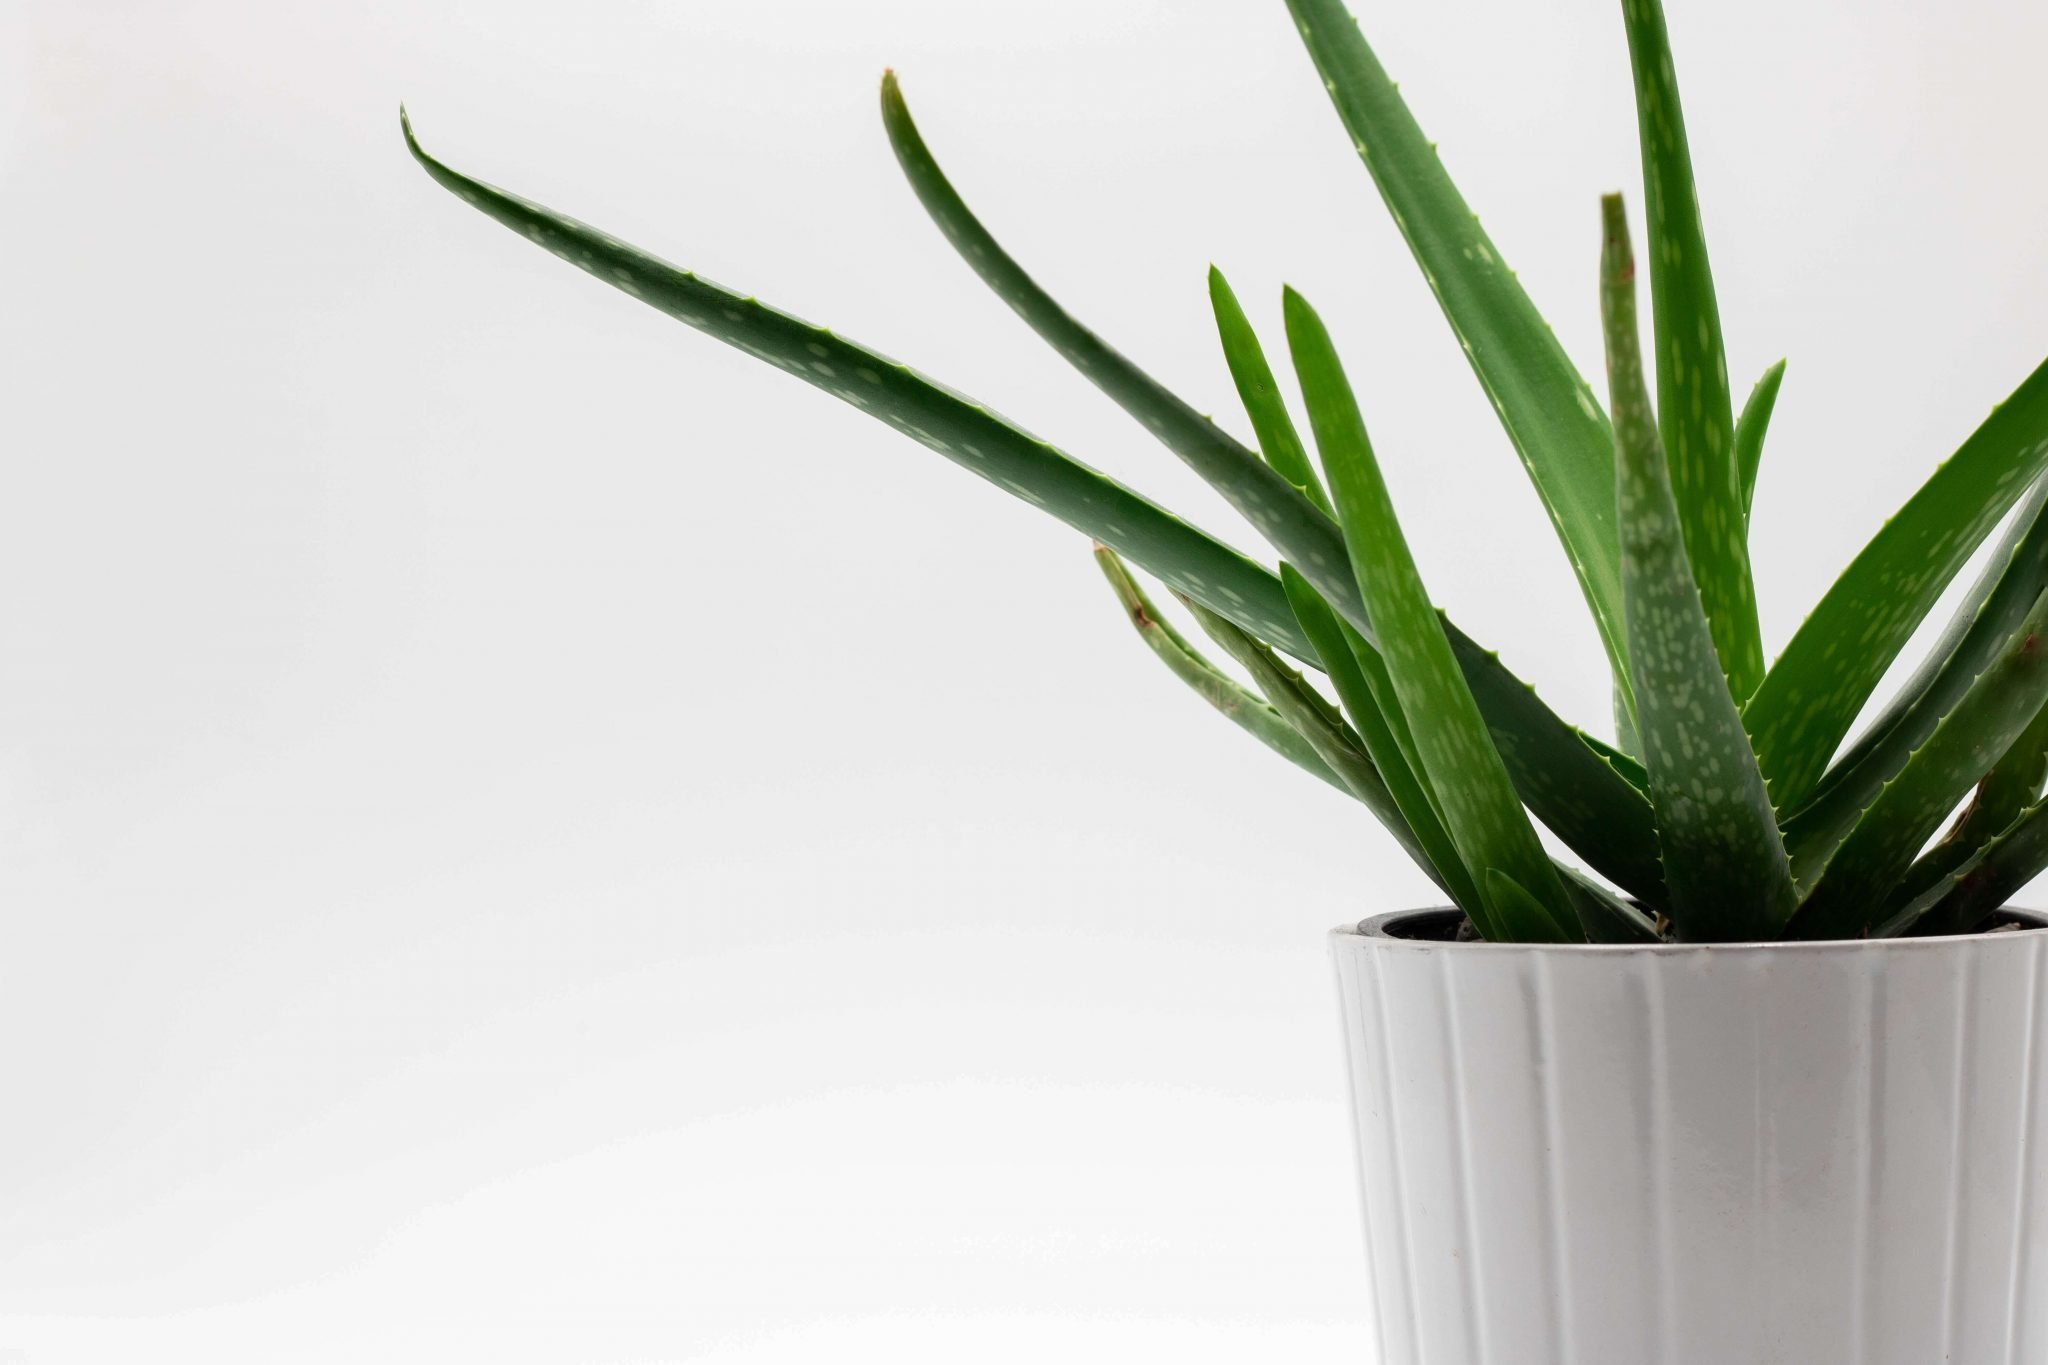 The Best Aloe Vera Plant Delivery Services in the USA